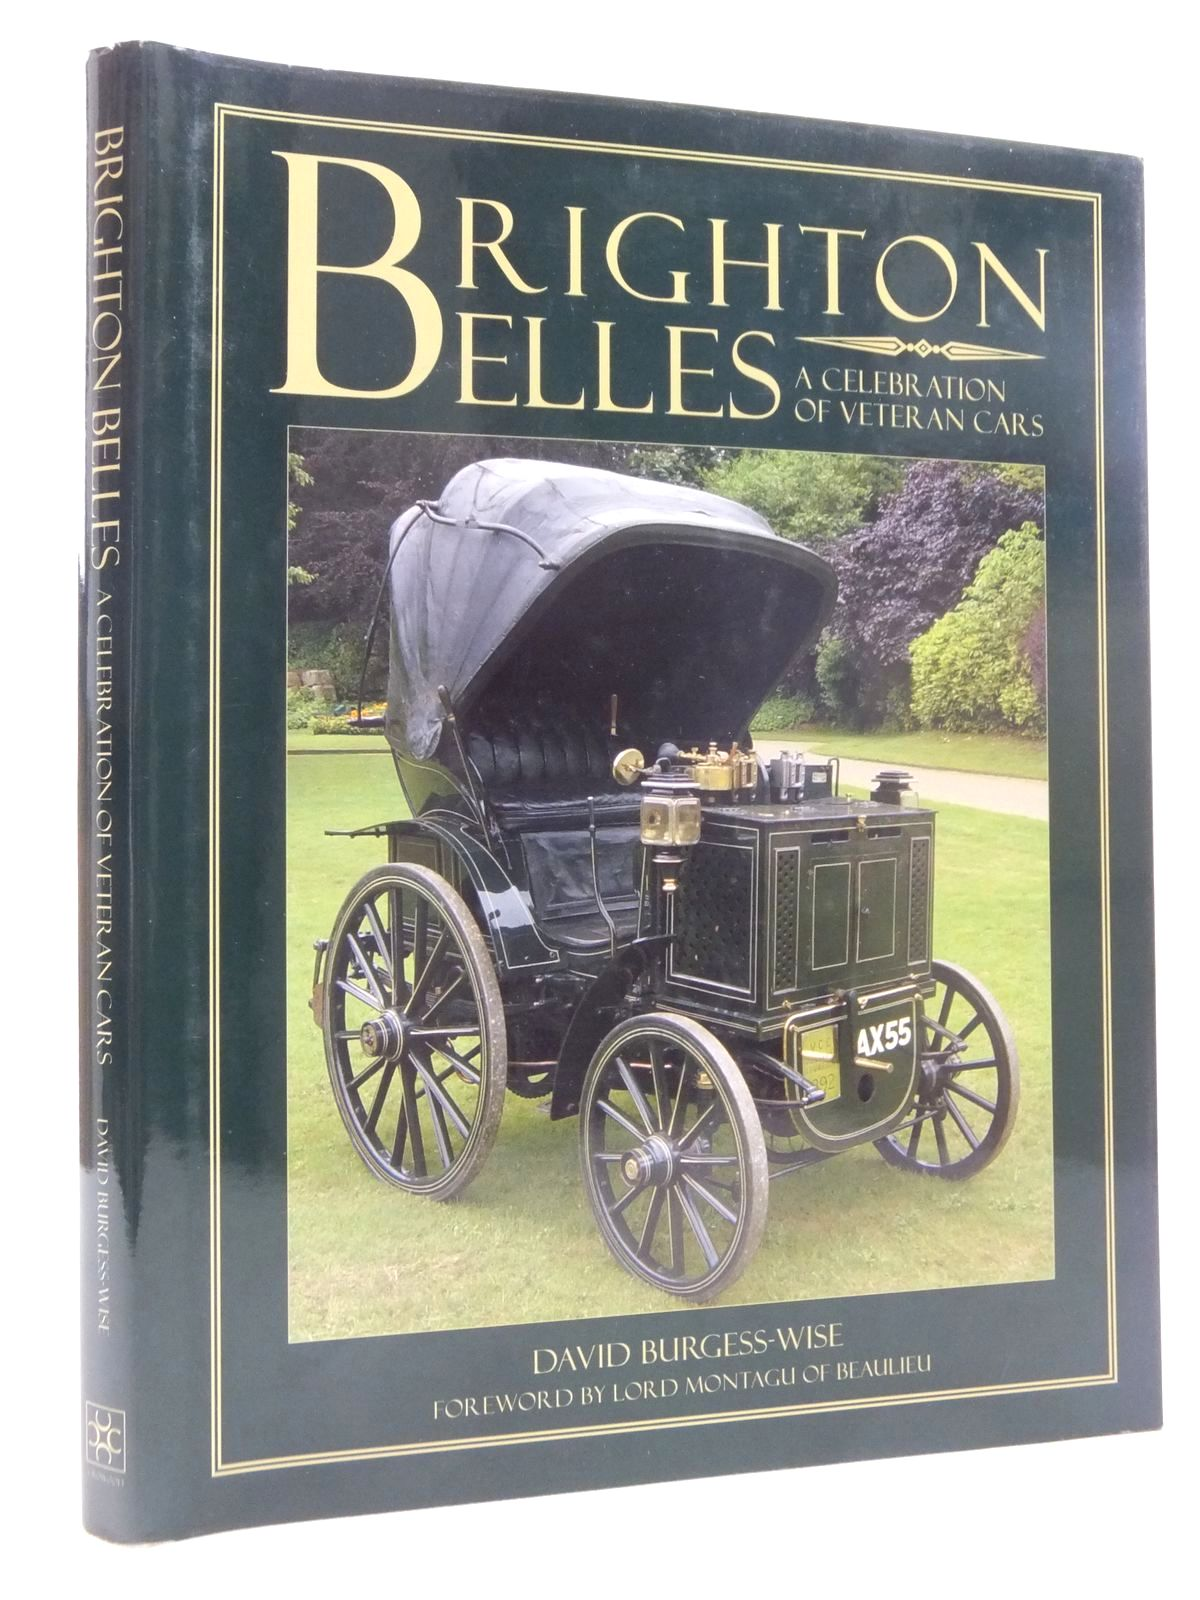 Photo of BRIGHTON BELLES A CELEBRATION OF VETERAN CARS written by Burgess-Wise, David published by The Crowood Press (STOCK CODE: 2123926)  for sale by Stella & Rose's Books